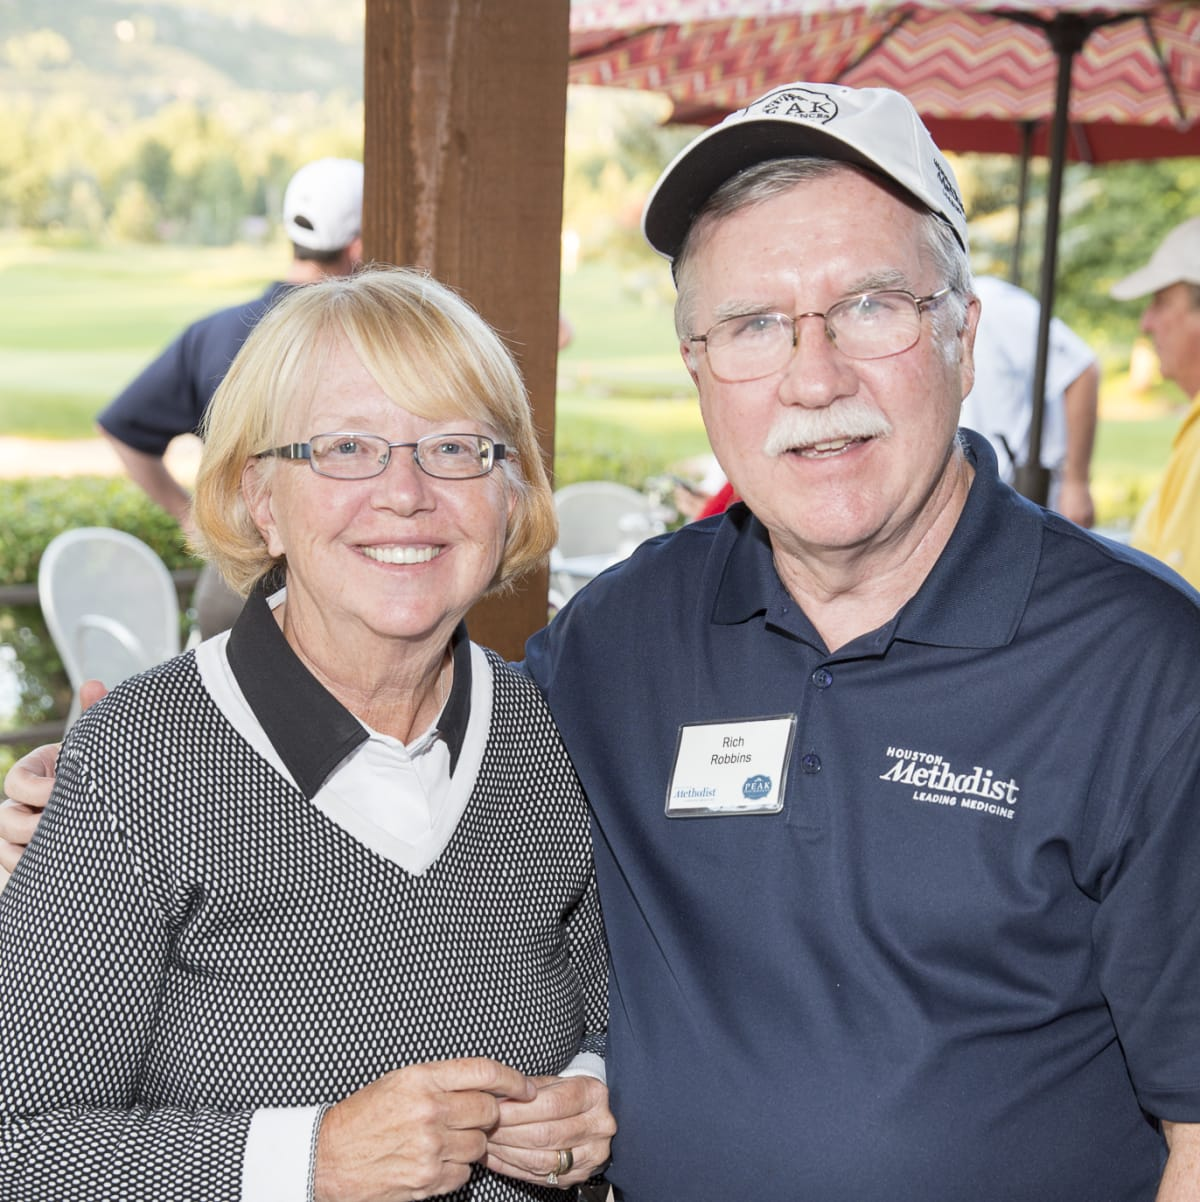 Houston Methodist in Aspen, July 2015, Anne and Dr Rich Robbins